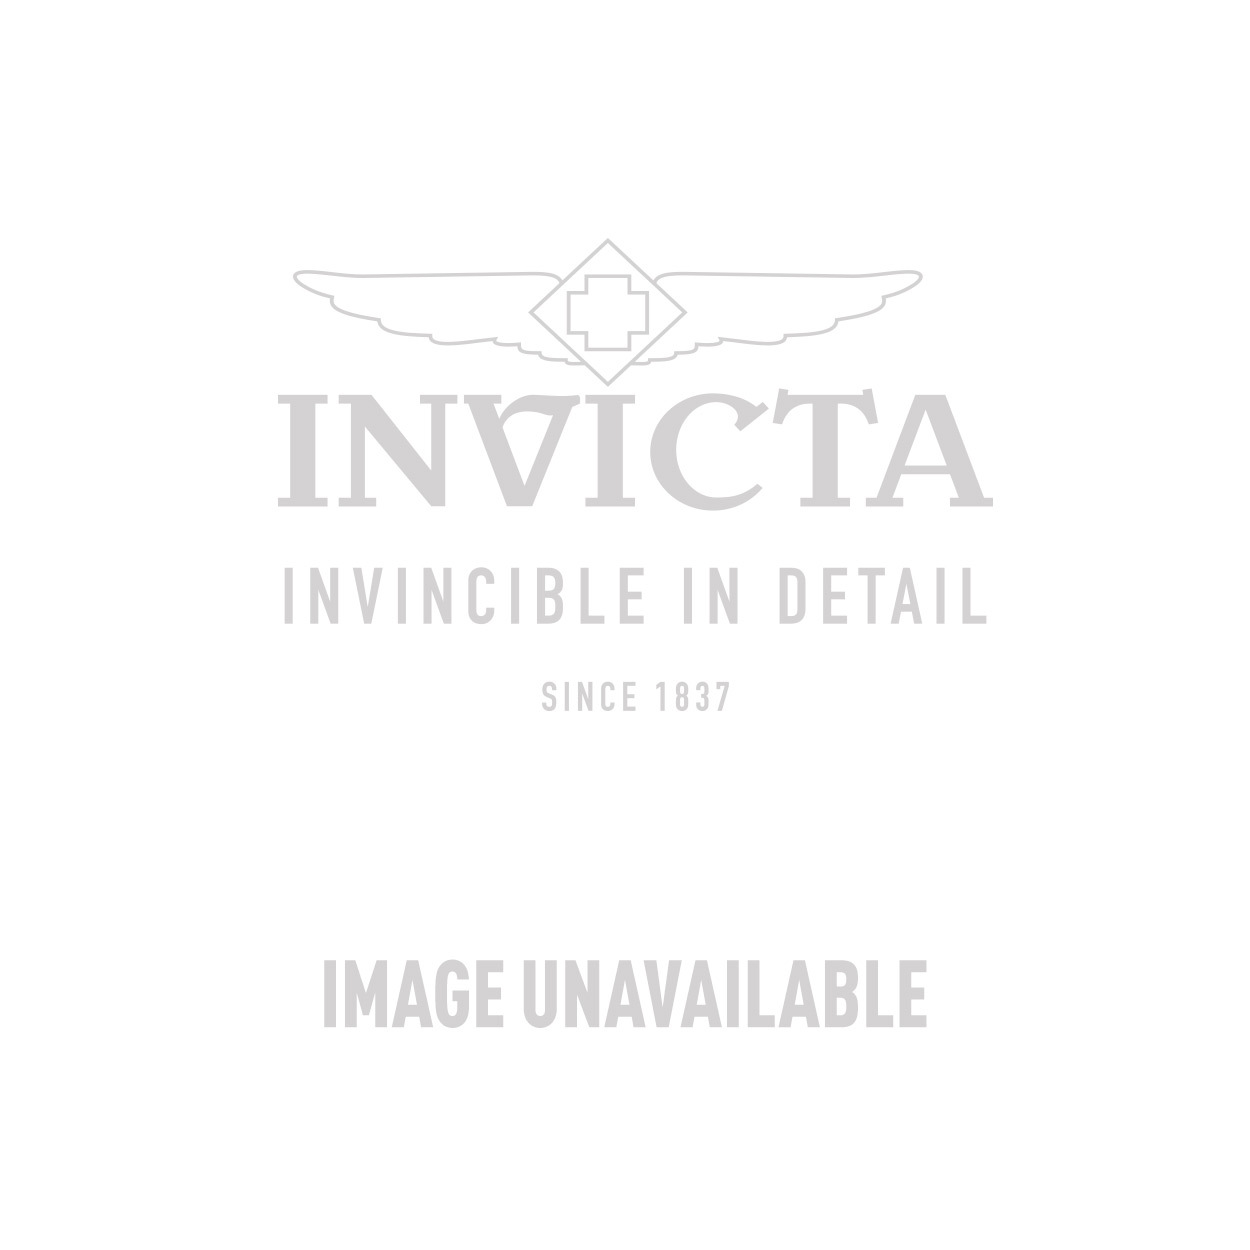 Invicta Venom Swiss Made Quartz Watch - Stainless Steel case with Steel, Black, White, Purple, Light Blue tone Stainless Steel, Polyurethane band - Model 19895